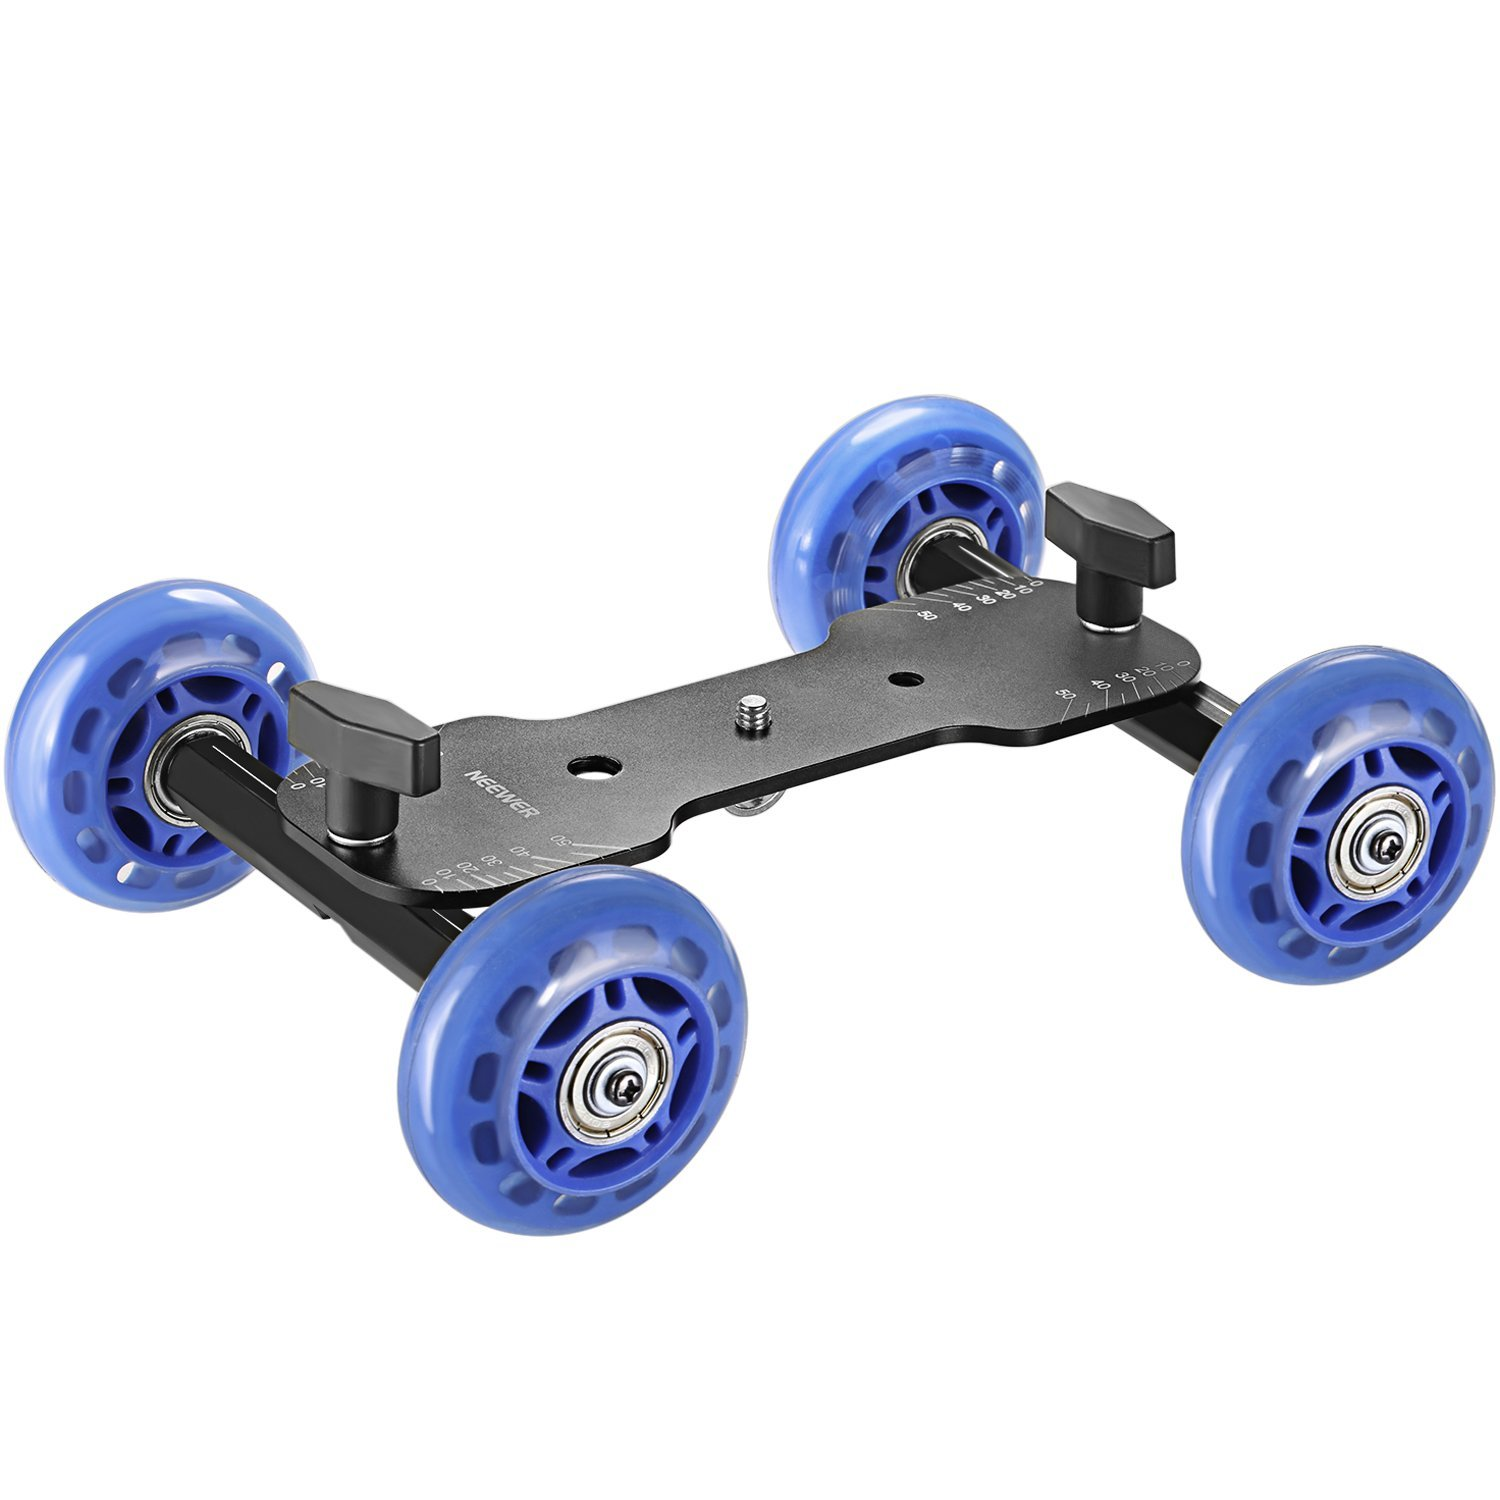 Neewer Mobile Rolling Slider Dolly Car Skater Video Track Rail Stabilizer with 1/4 and 3/8 inch Thread 66 pounds/30 kilograms Load Capacity for Speedlite DSLR Cameras Video Camcorders(Blue) 10089212